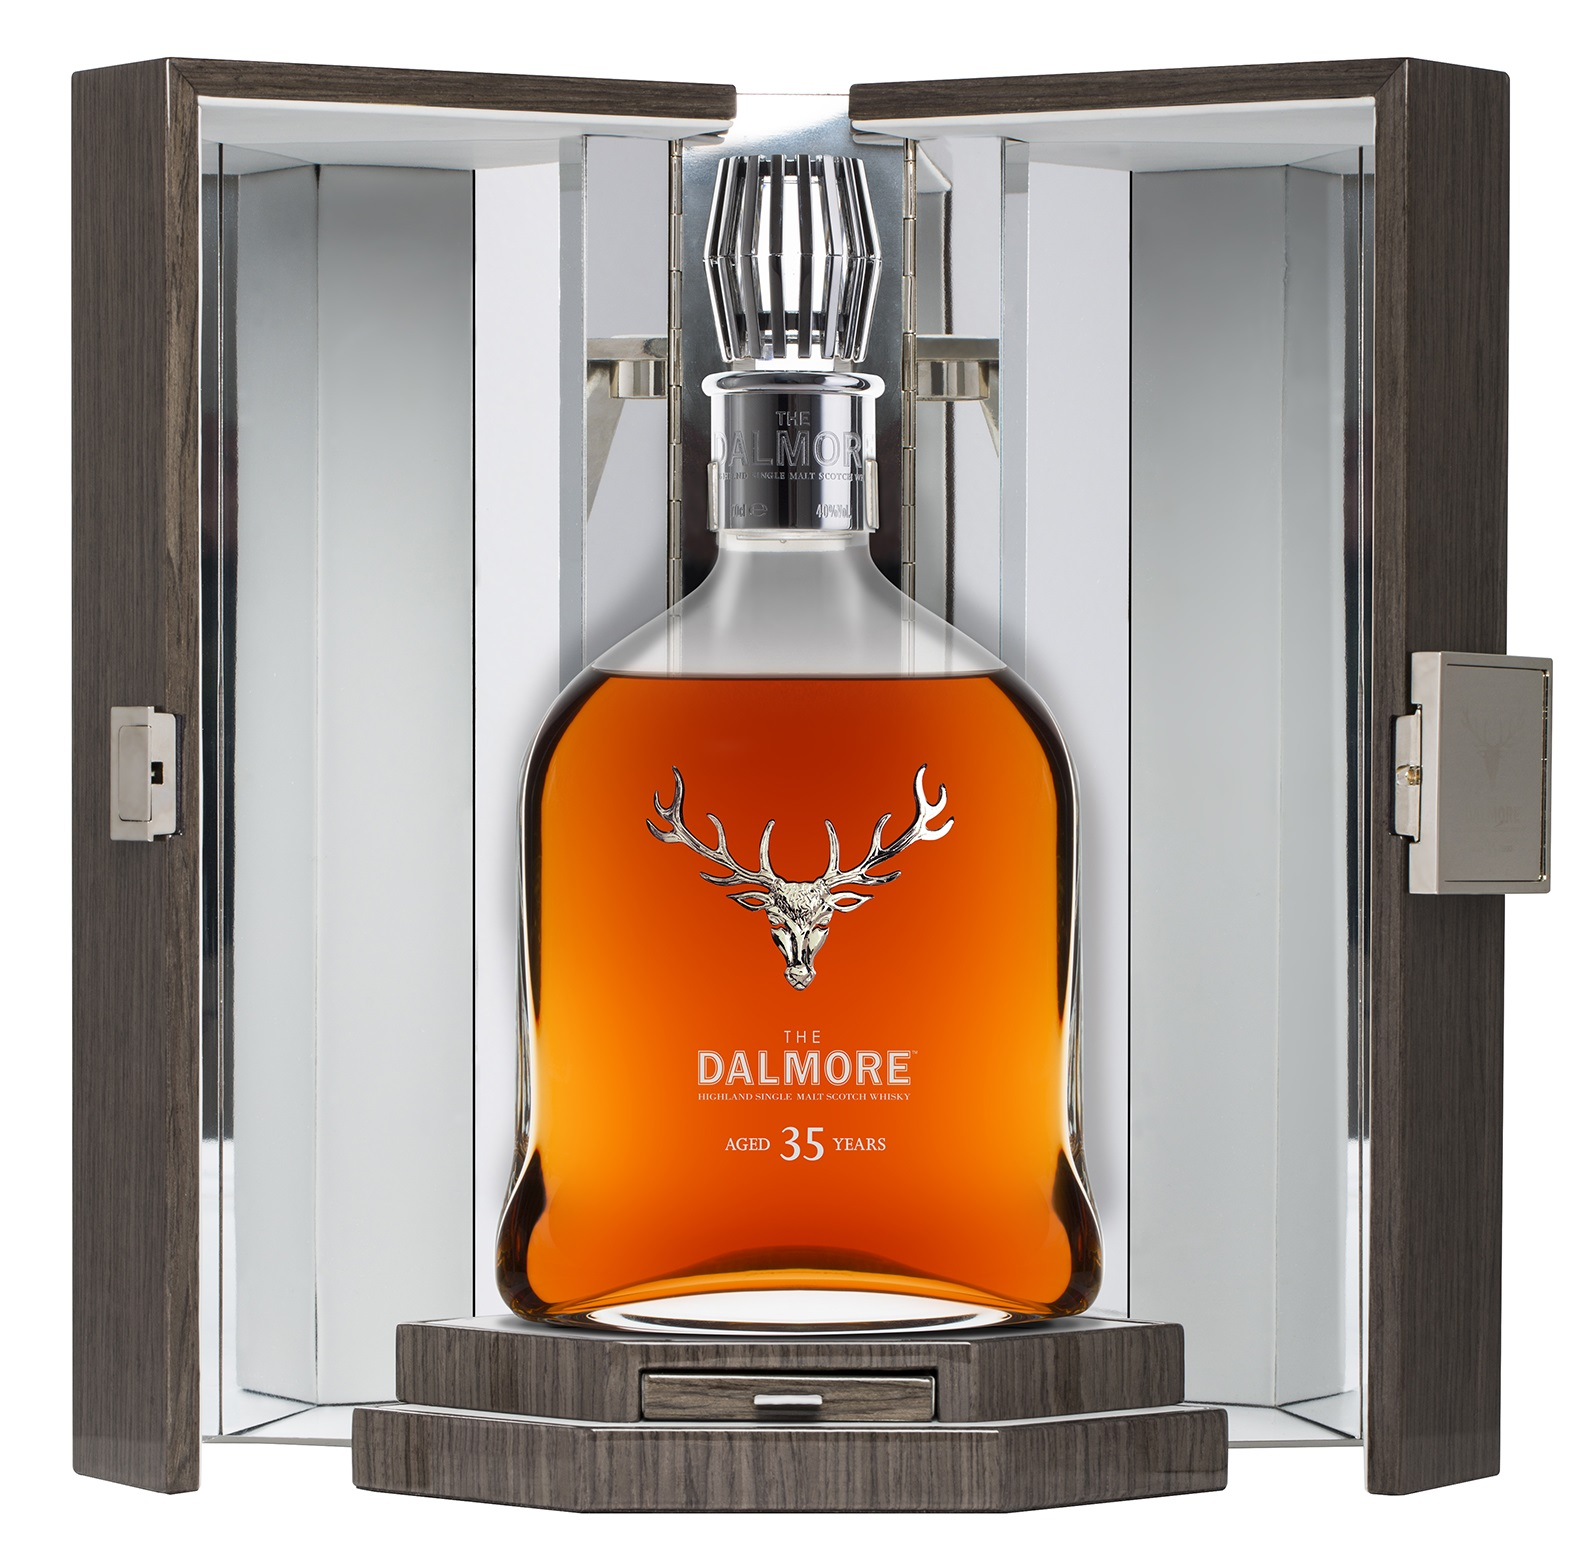 The Dalmore 35 Year Old